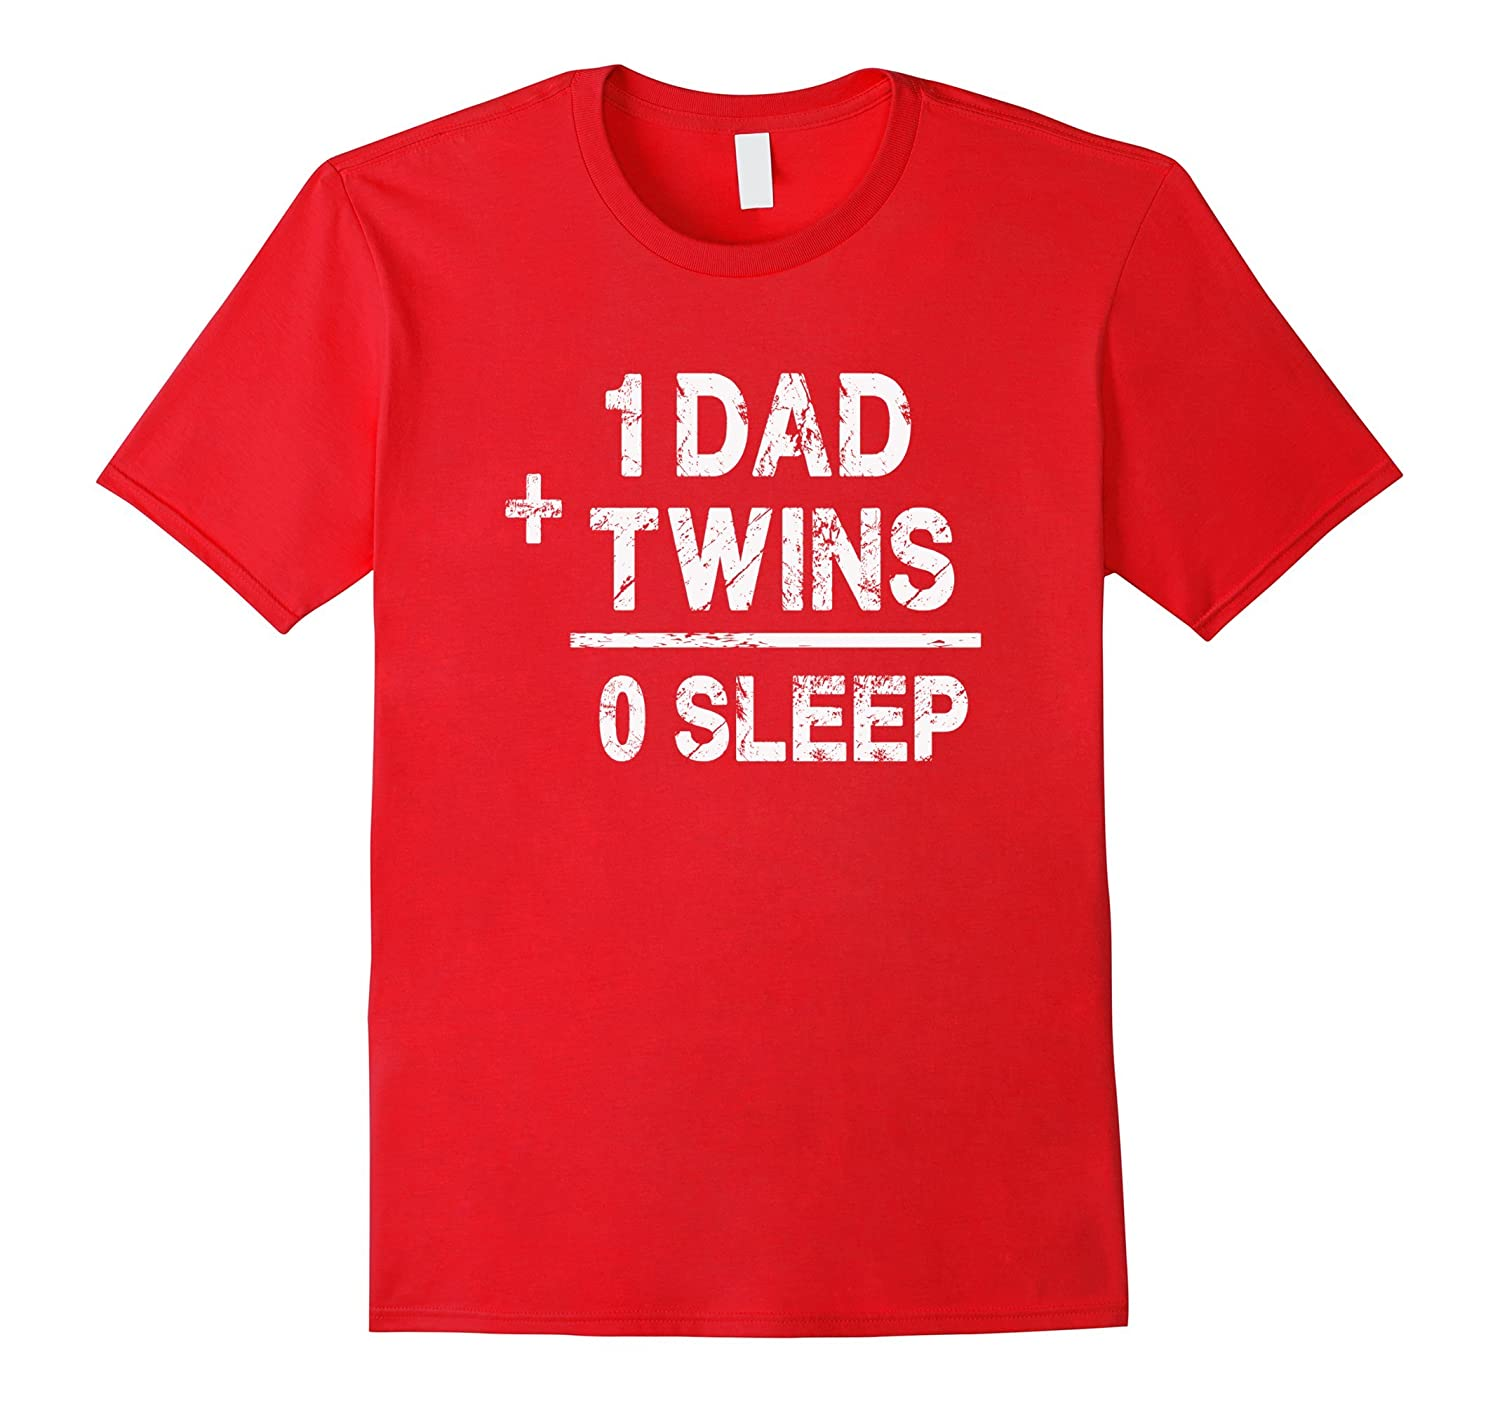 1 Dad Plus Twins Equals 0 Sleep - Funny Twin Parent T Shirt-TH